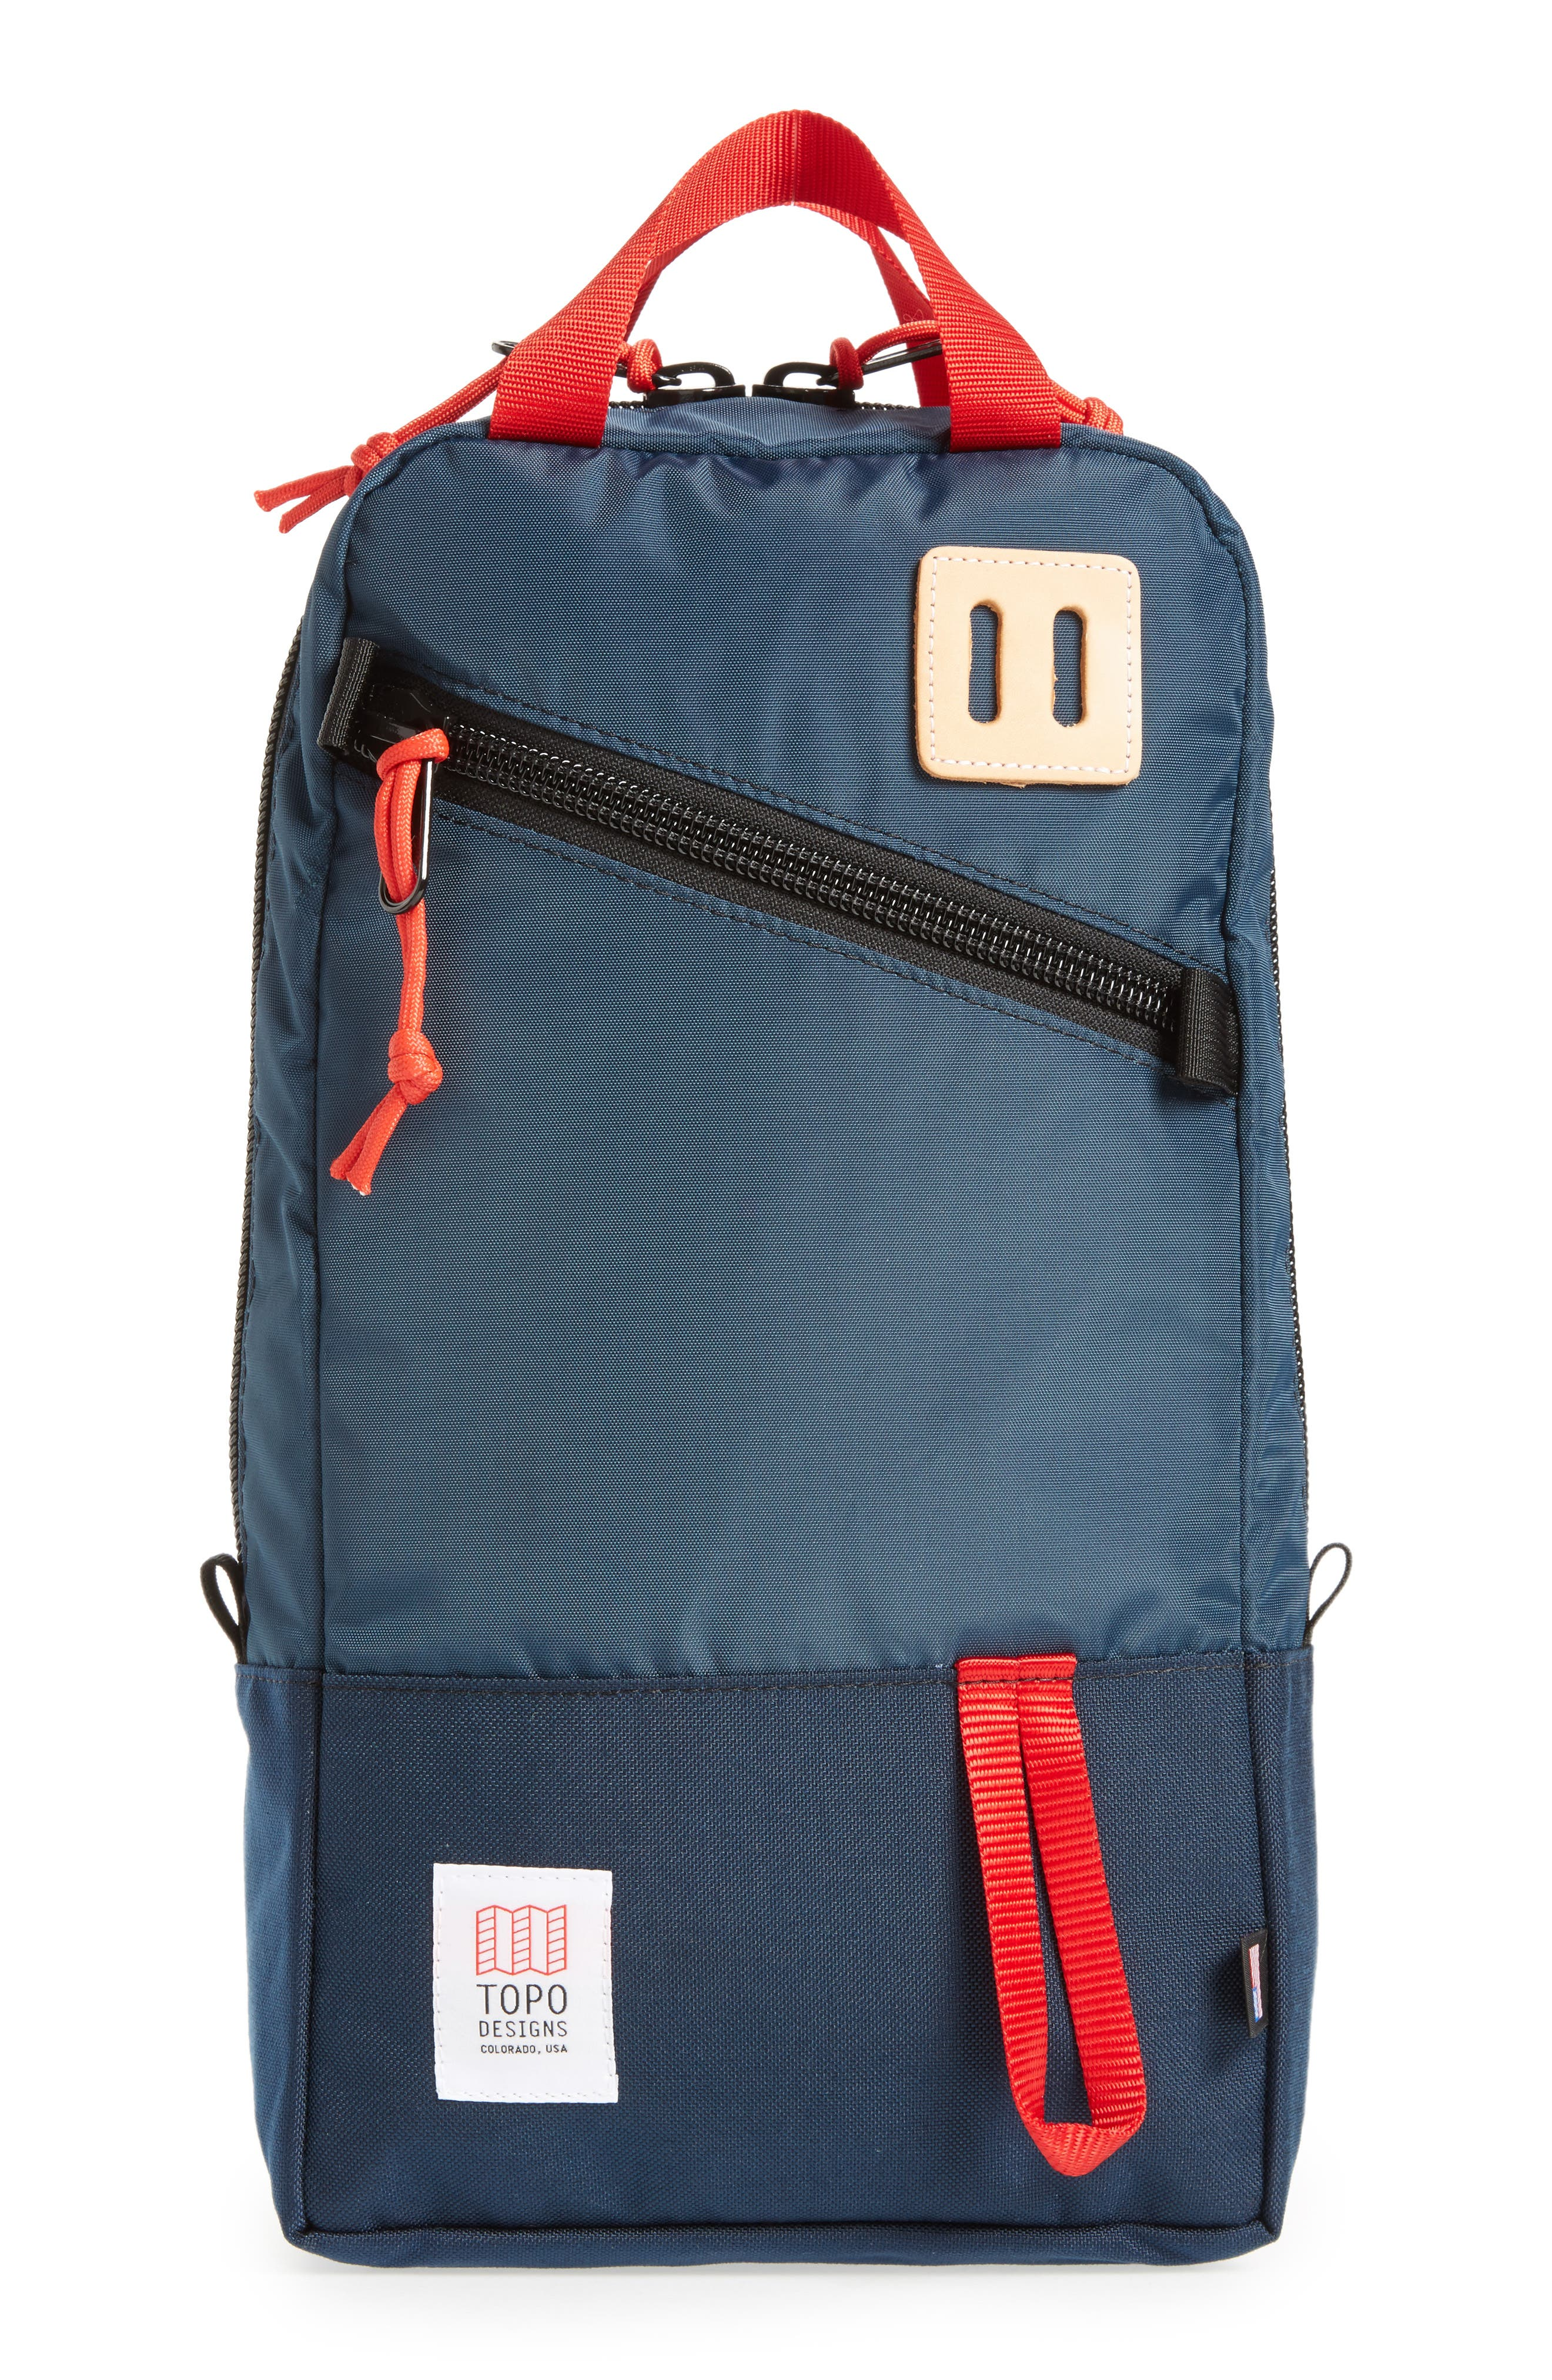 Topo Designs Trip Backpack